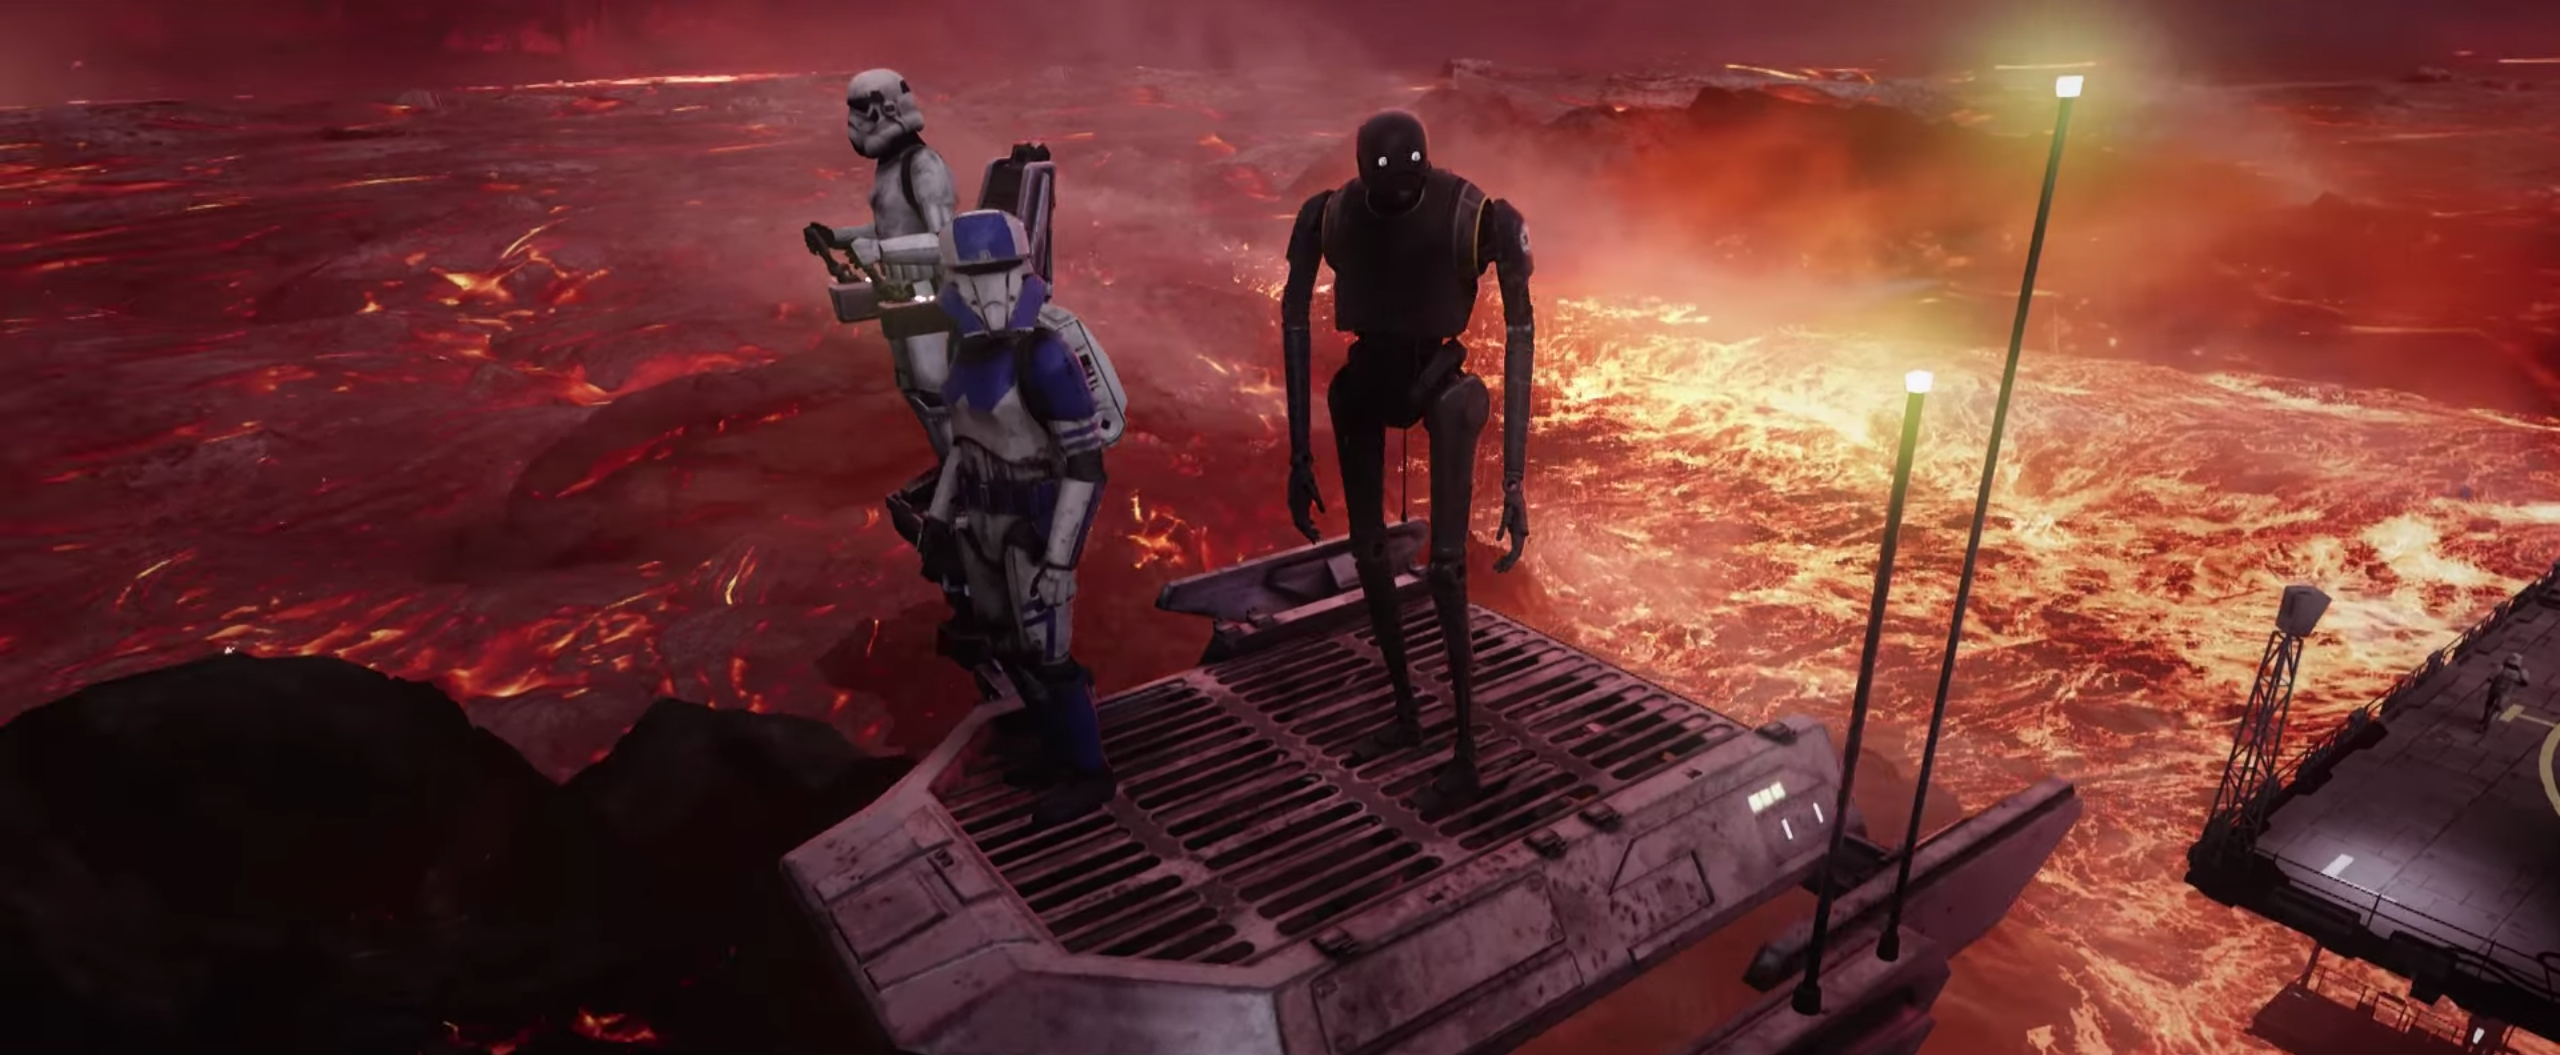 Three robotic-looking figures stand on a metal platform with a sea of lava and flames beneath them.